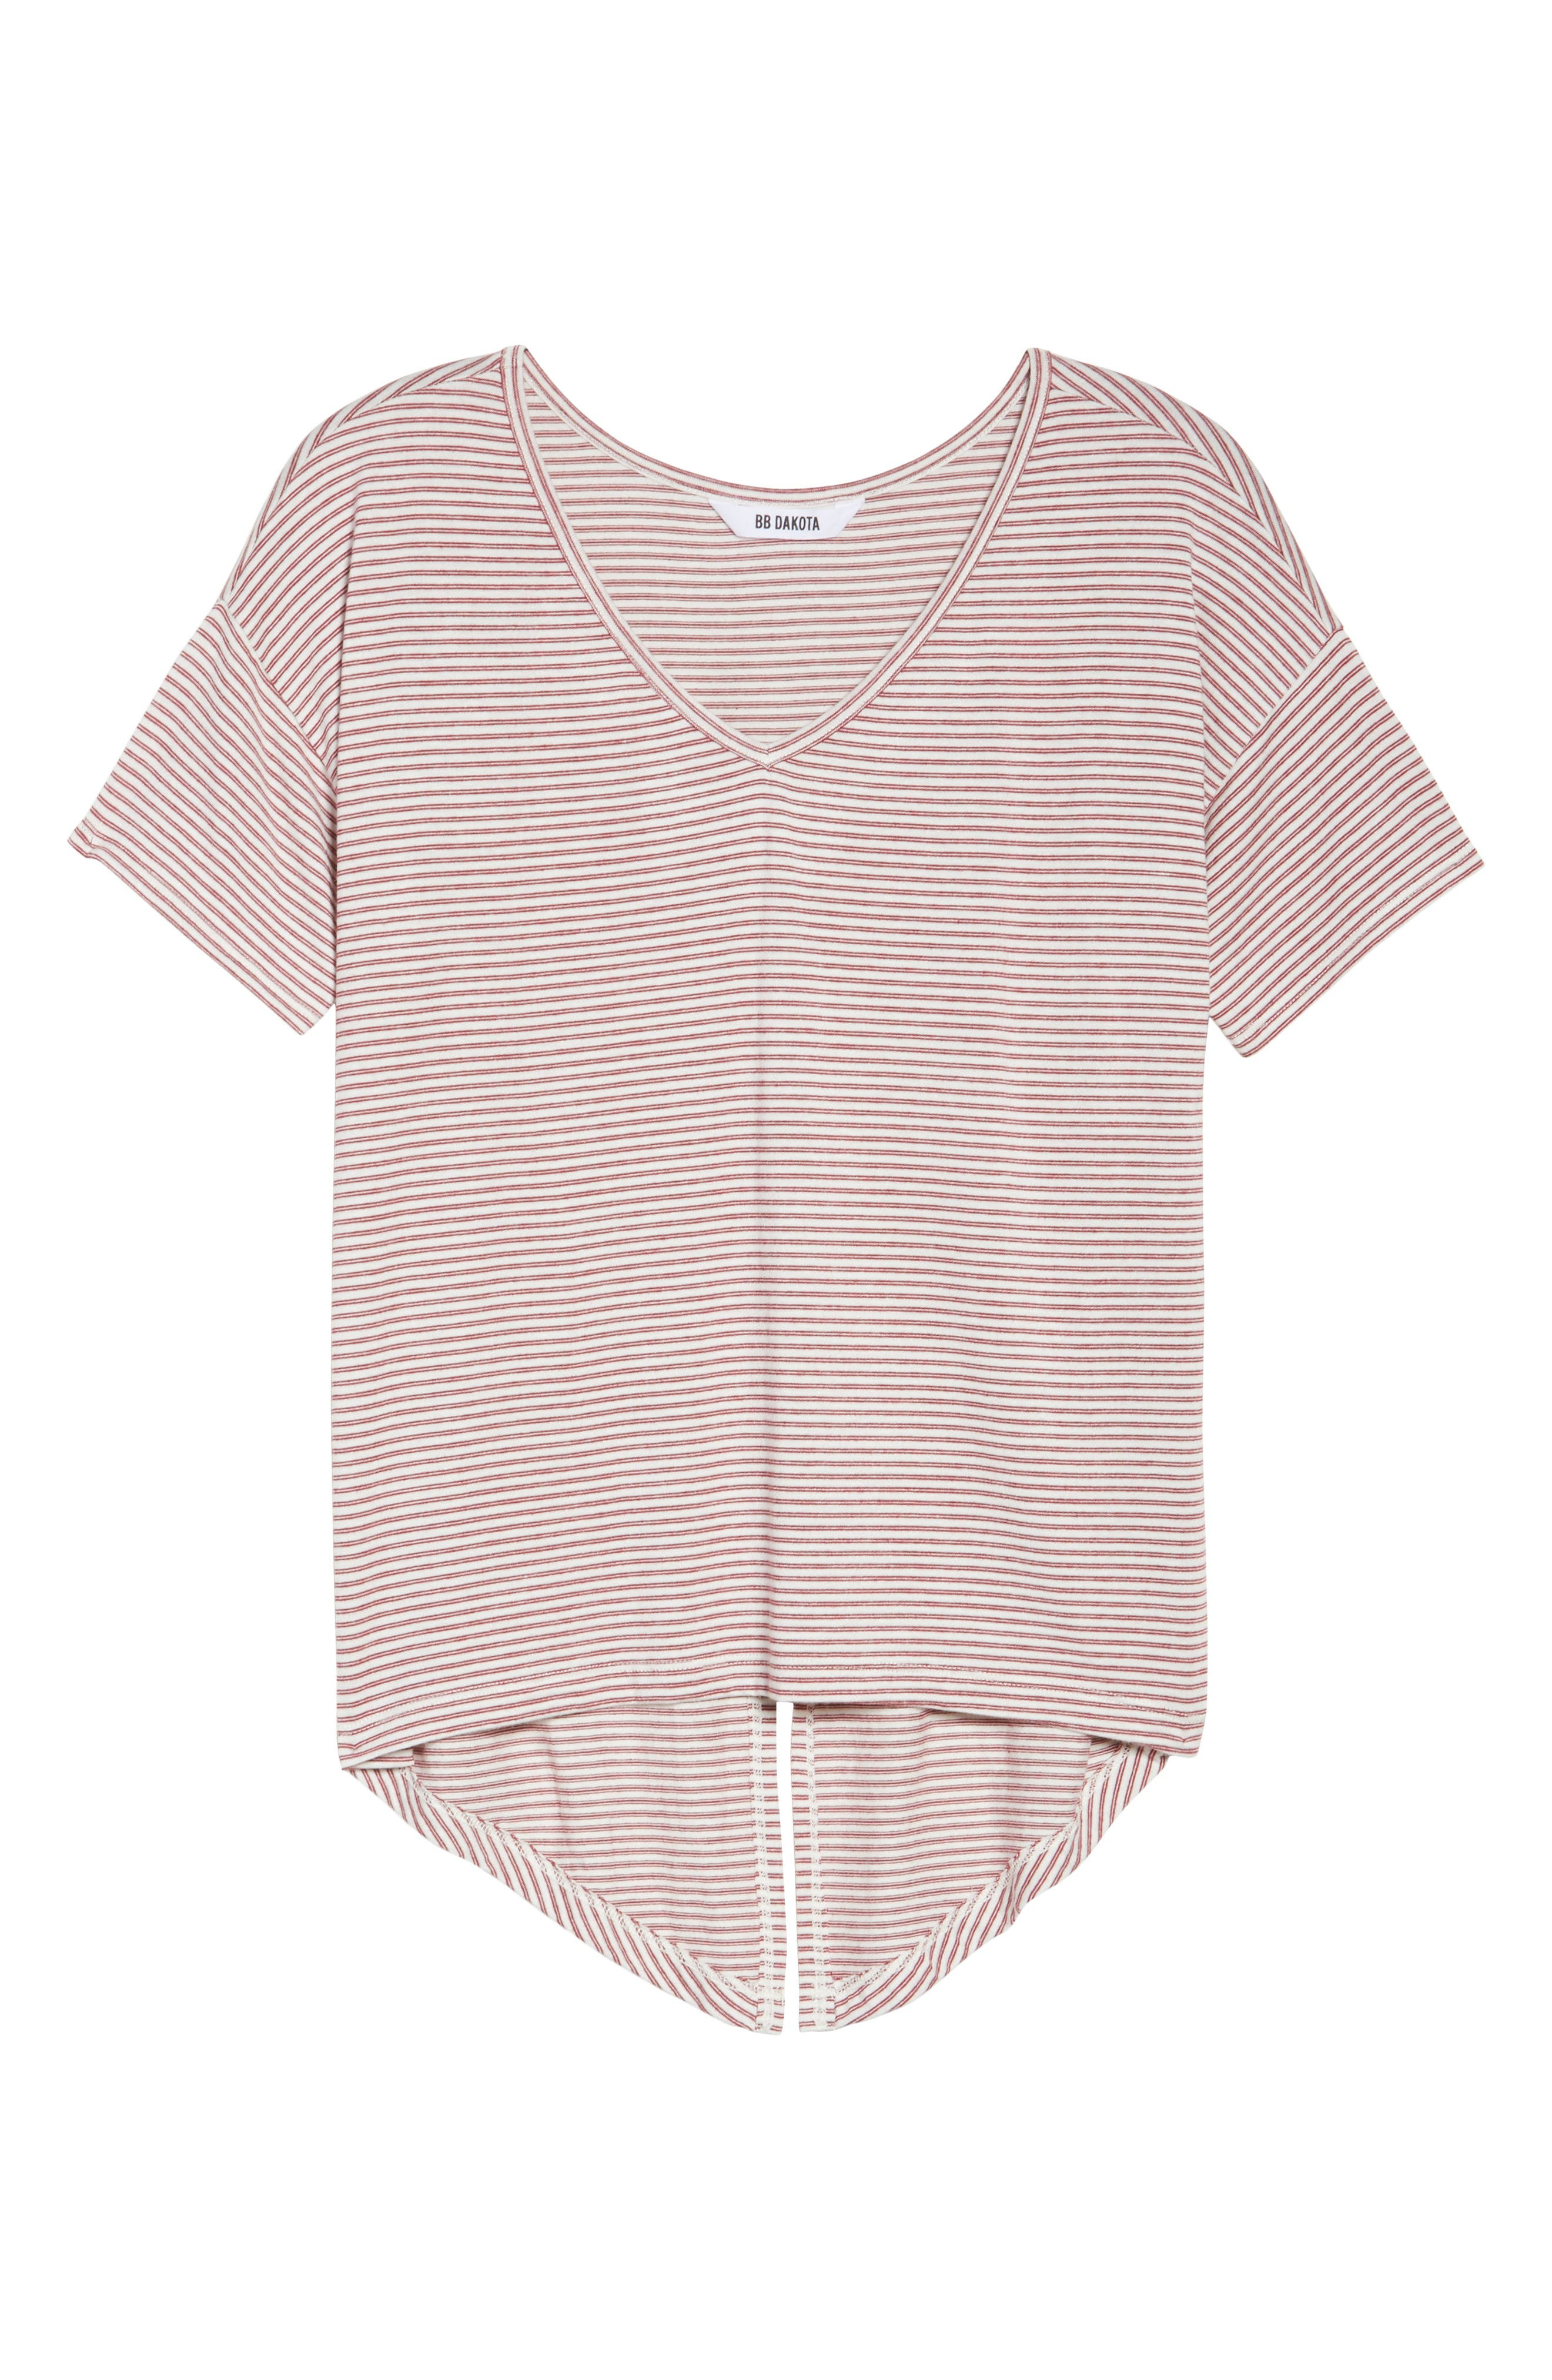 Wilona Back Tie Stripe Tee,                             Alternate thumbnail 4, color,                             Red/ White